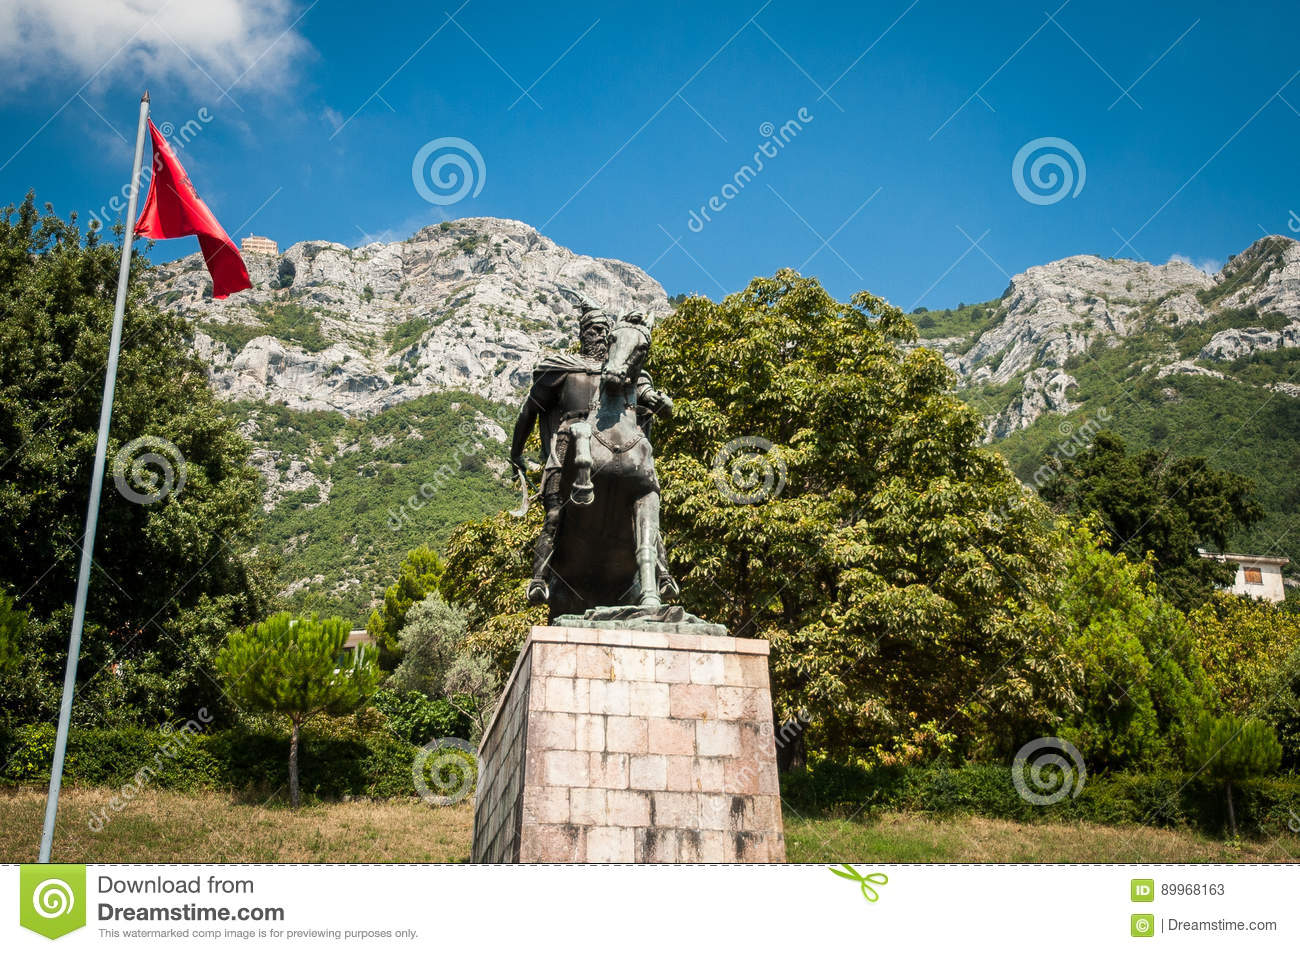 Skanderbeg-Monument in Kruje